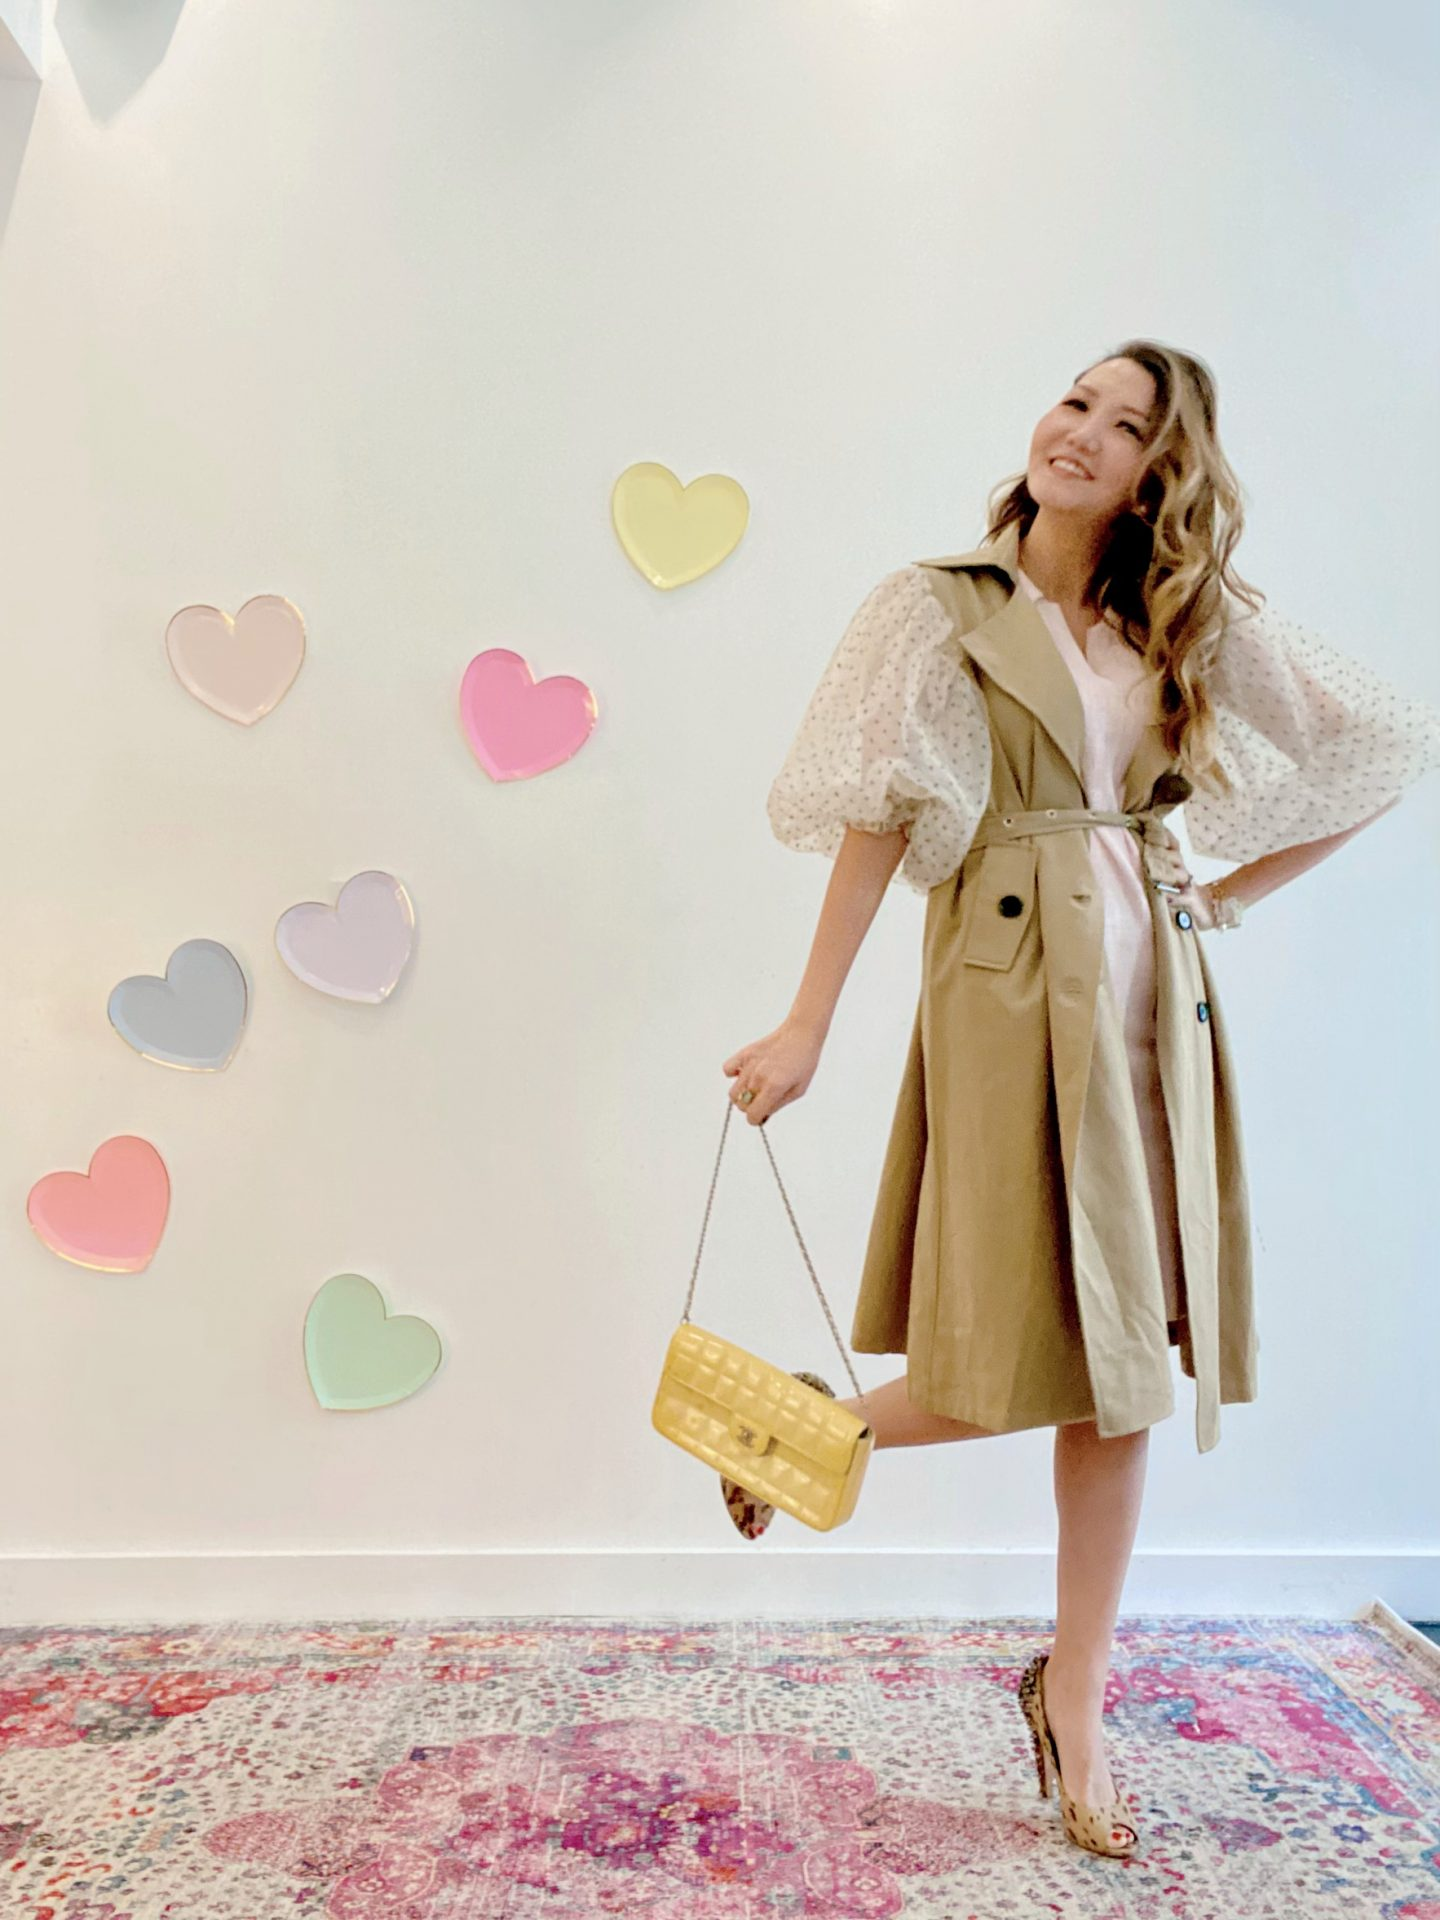 Valentines outfit ideas, vday outfits, fashion inspiration, fashion blogger